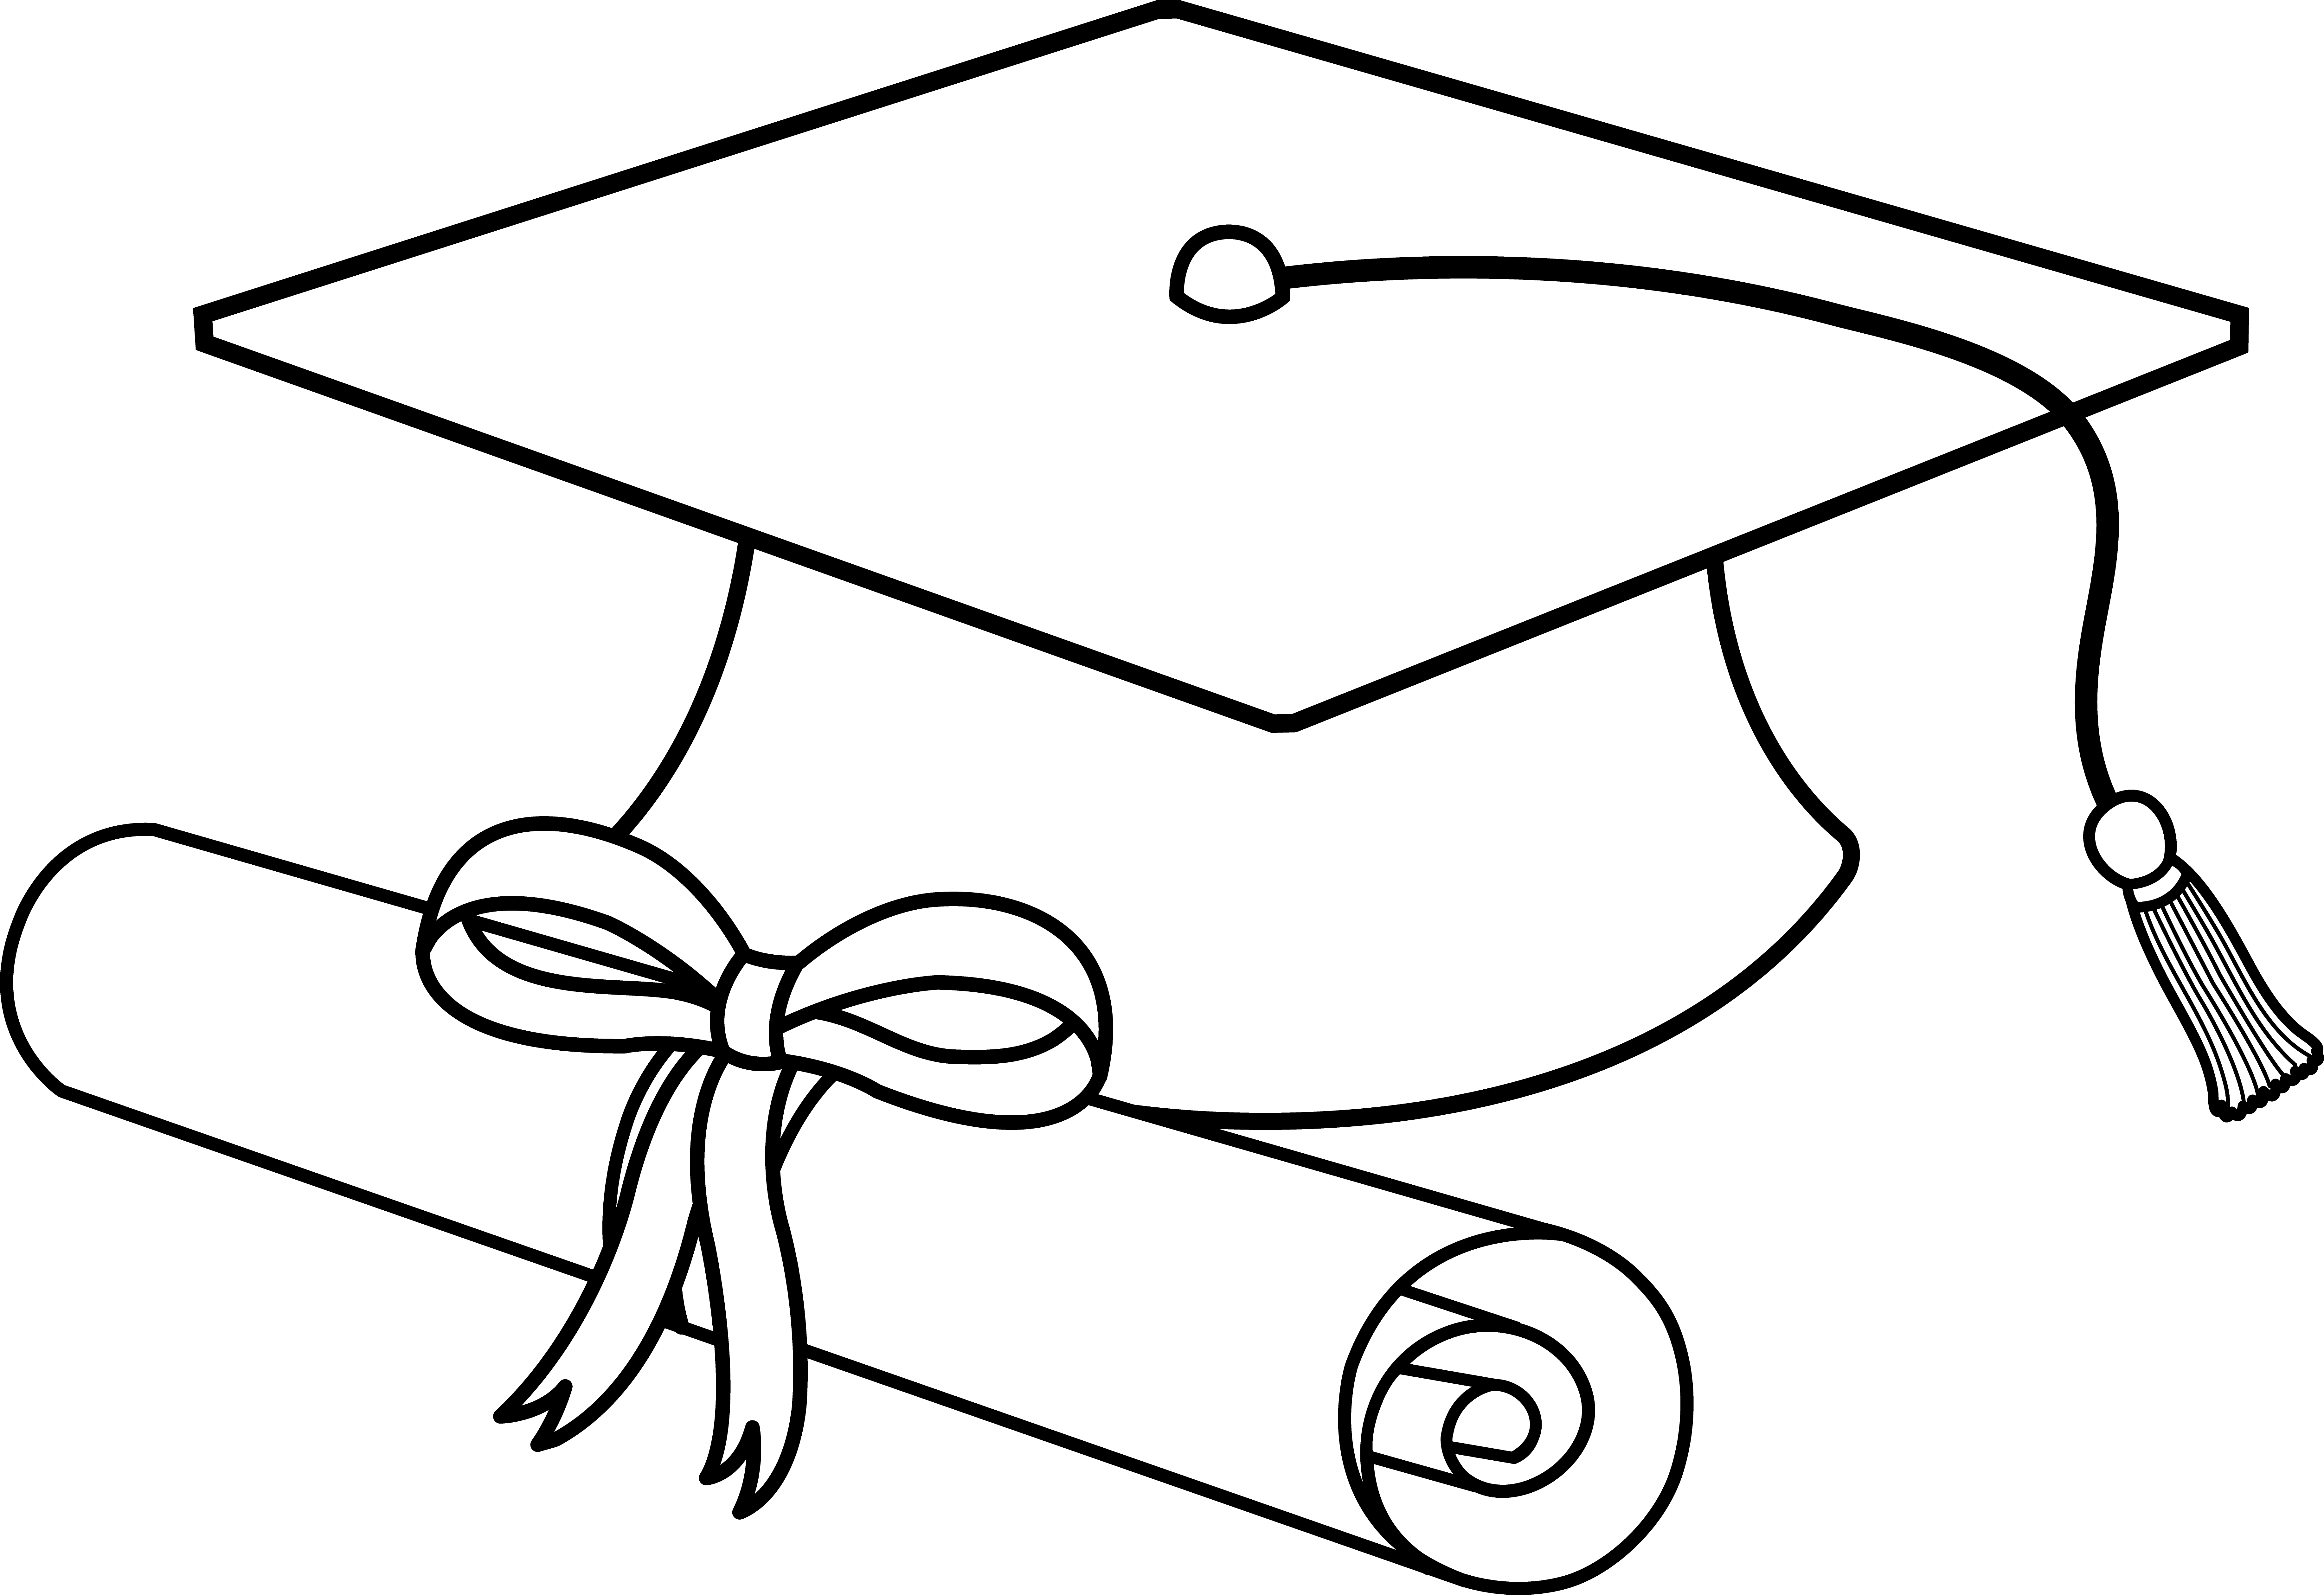 black and white vector for graduation cap clipart free download